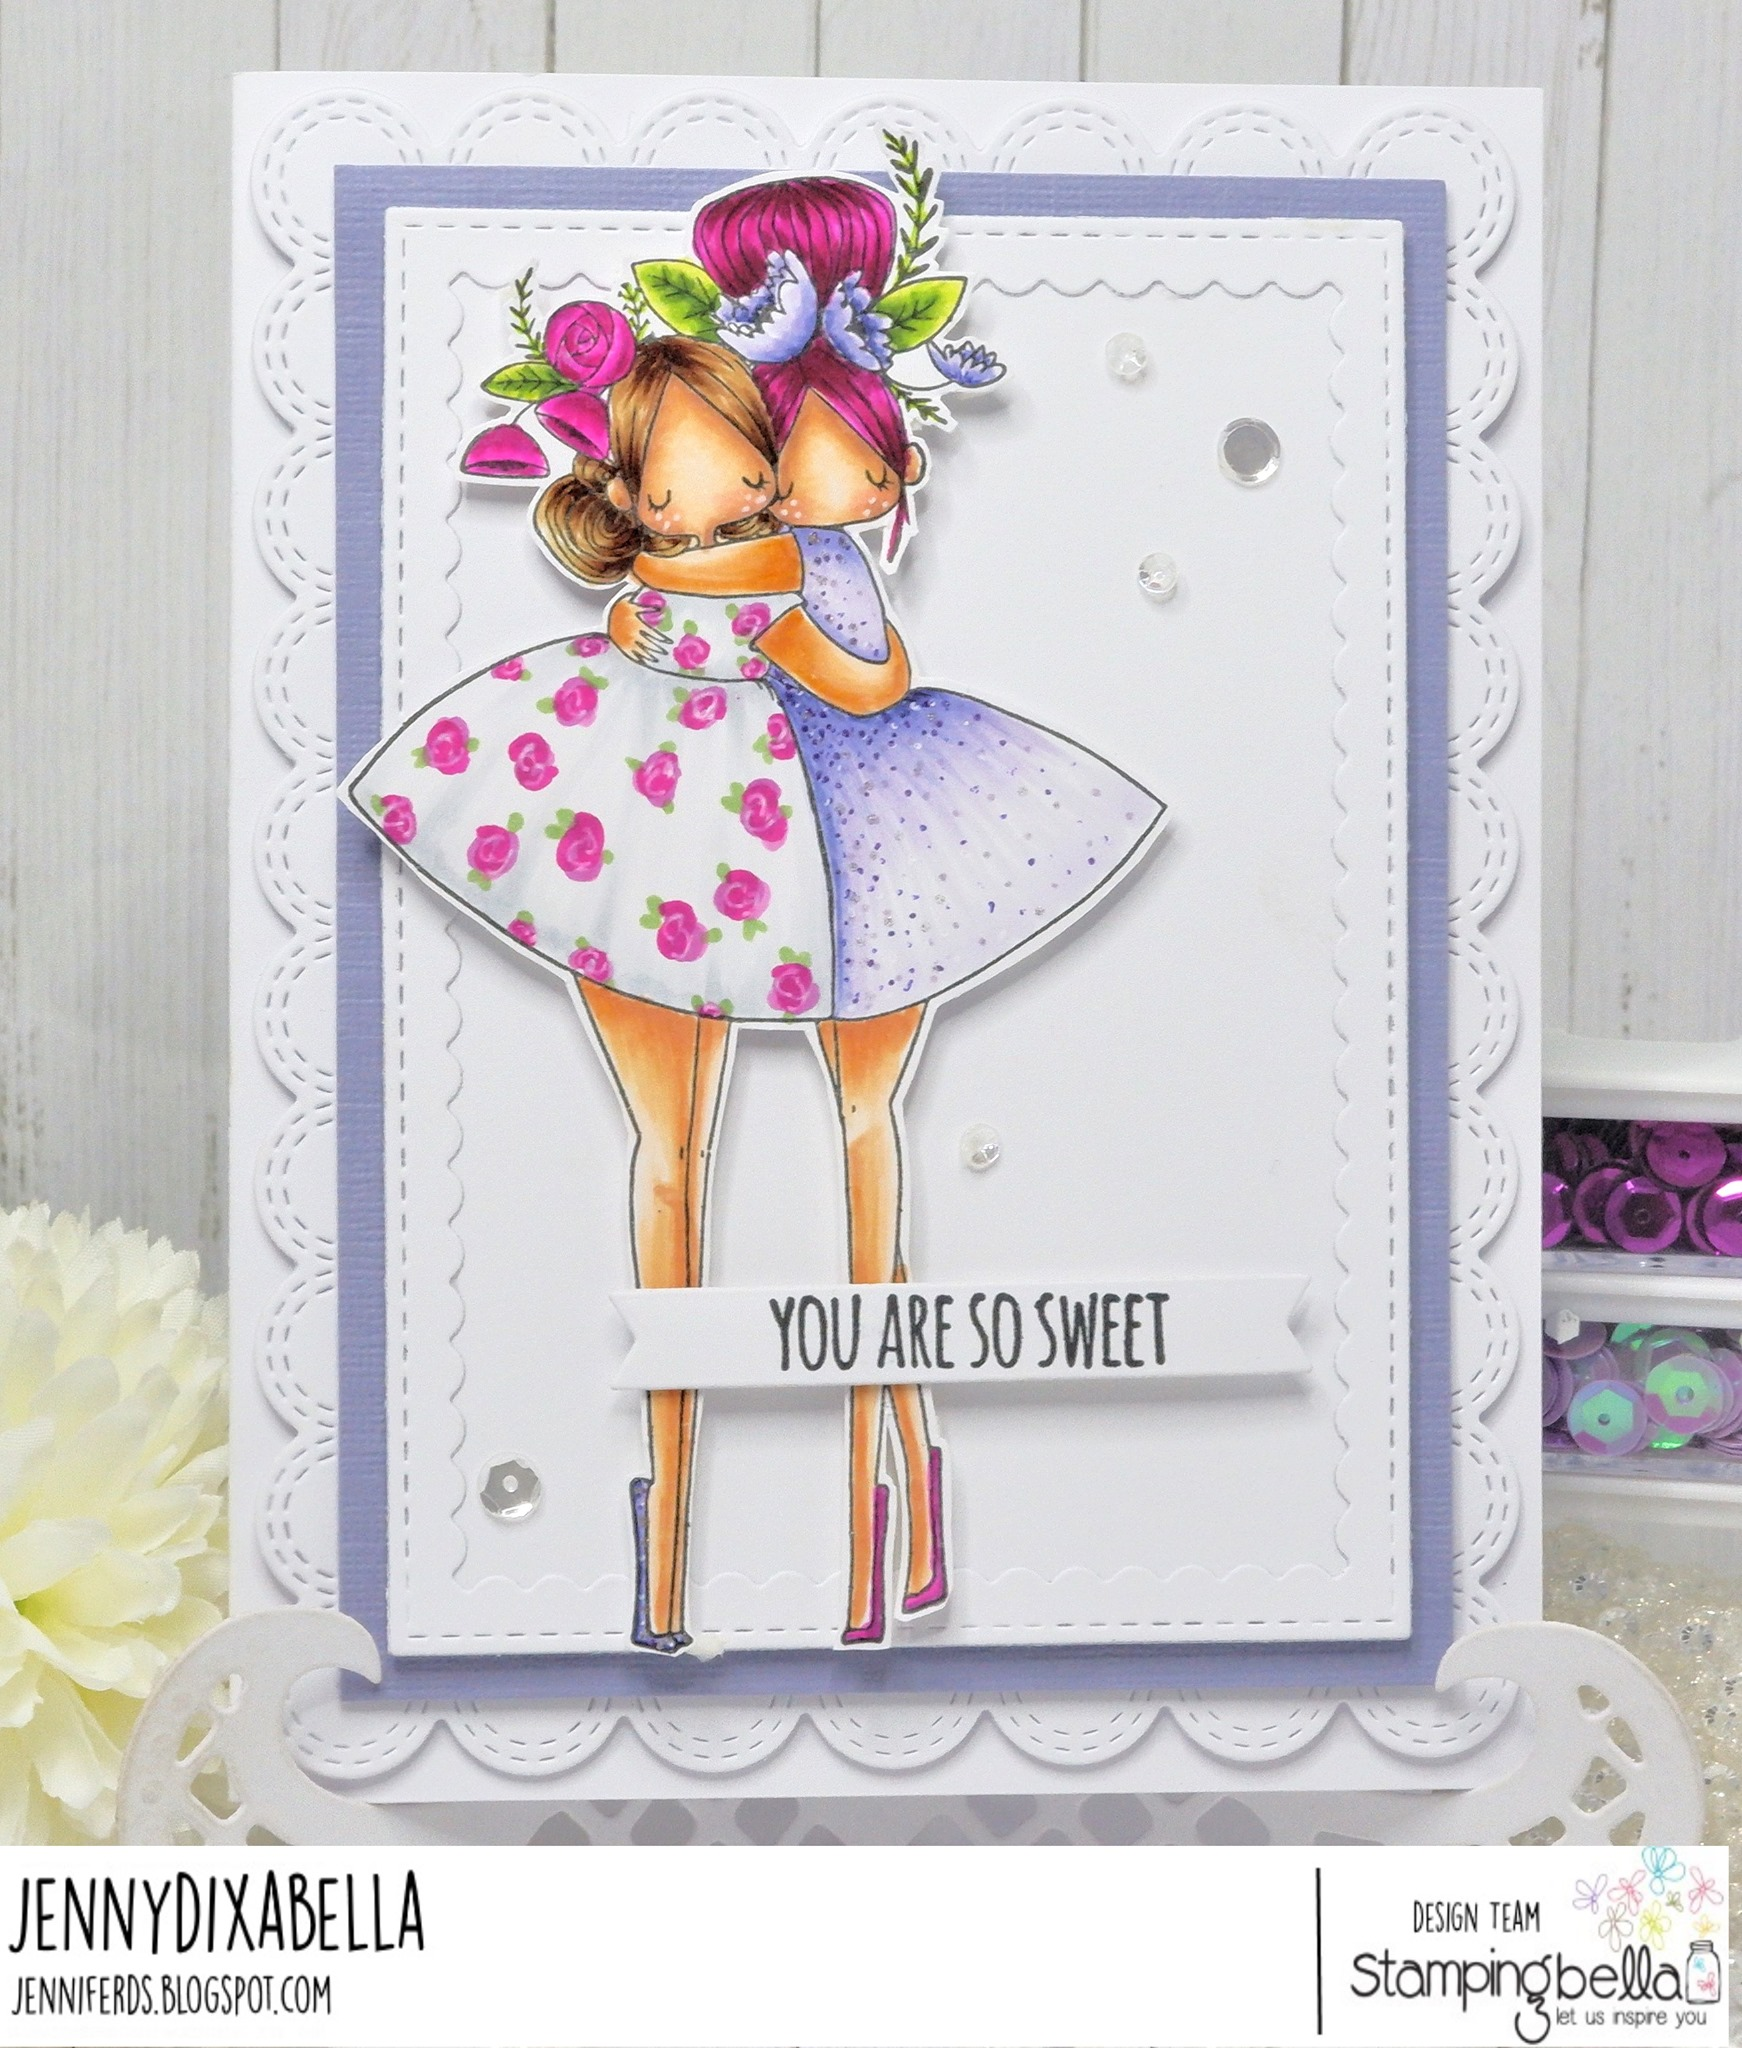 www.stampingbella.com: rubber stamp used:  CURVY GIRL BEST FRIENDS card by Jenny Dix